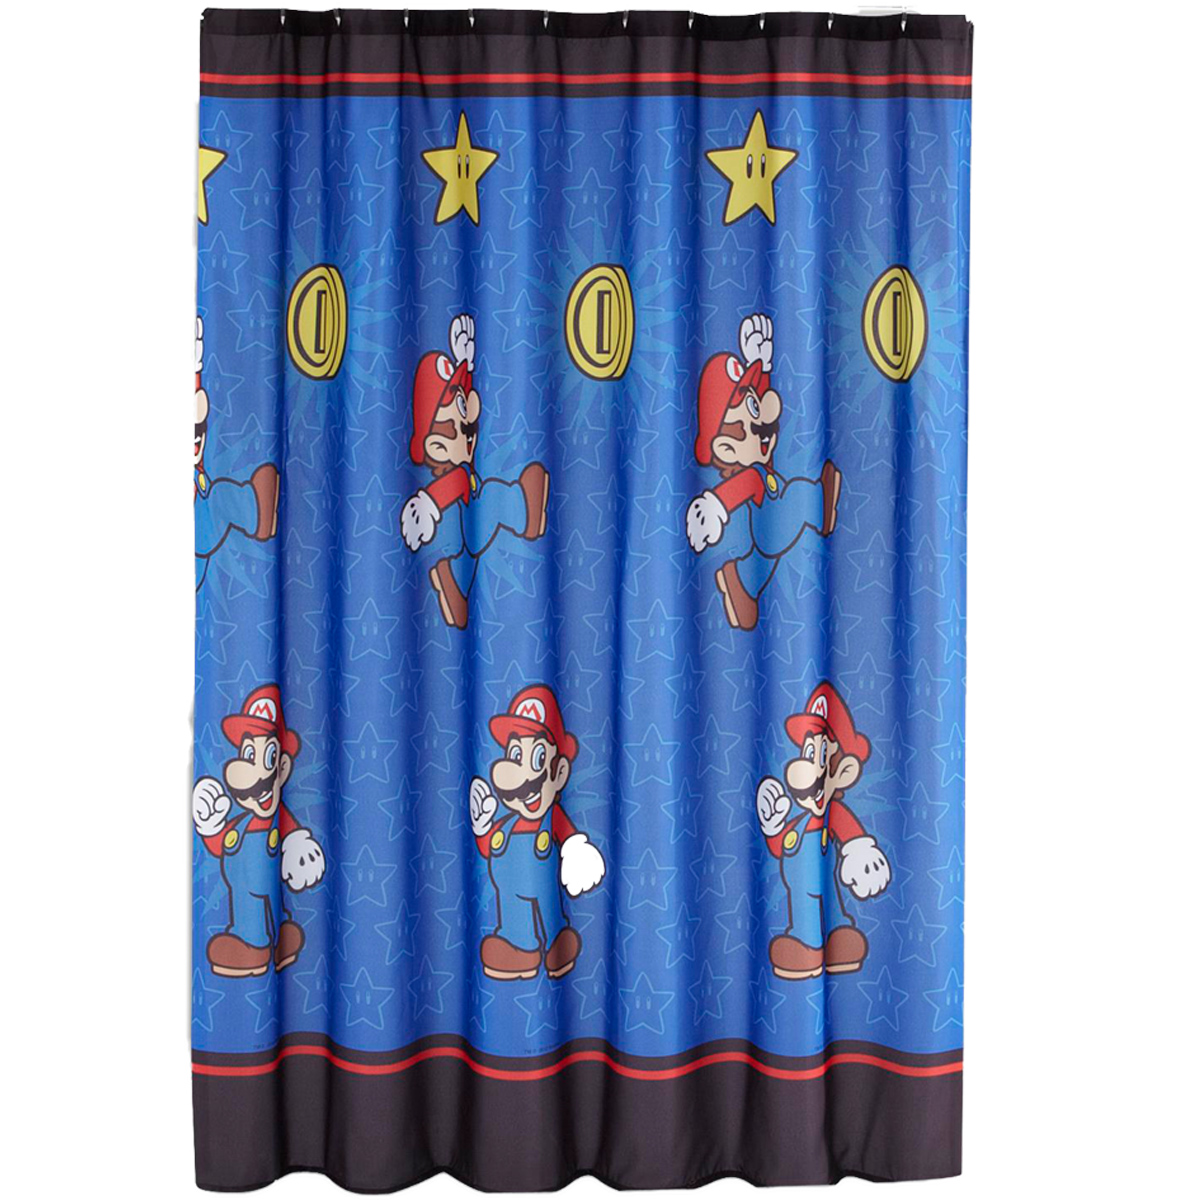 Franco Manufacturing Company Inc 16429819 Super Mario Shower Curtain Simply Best Bathroom Decoration